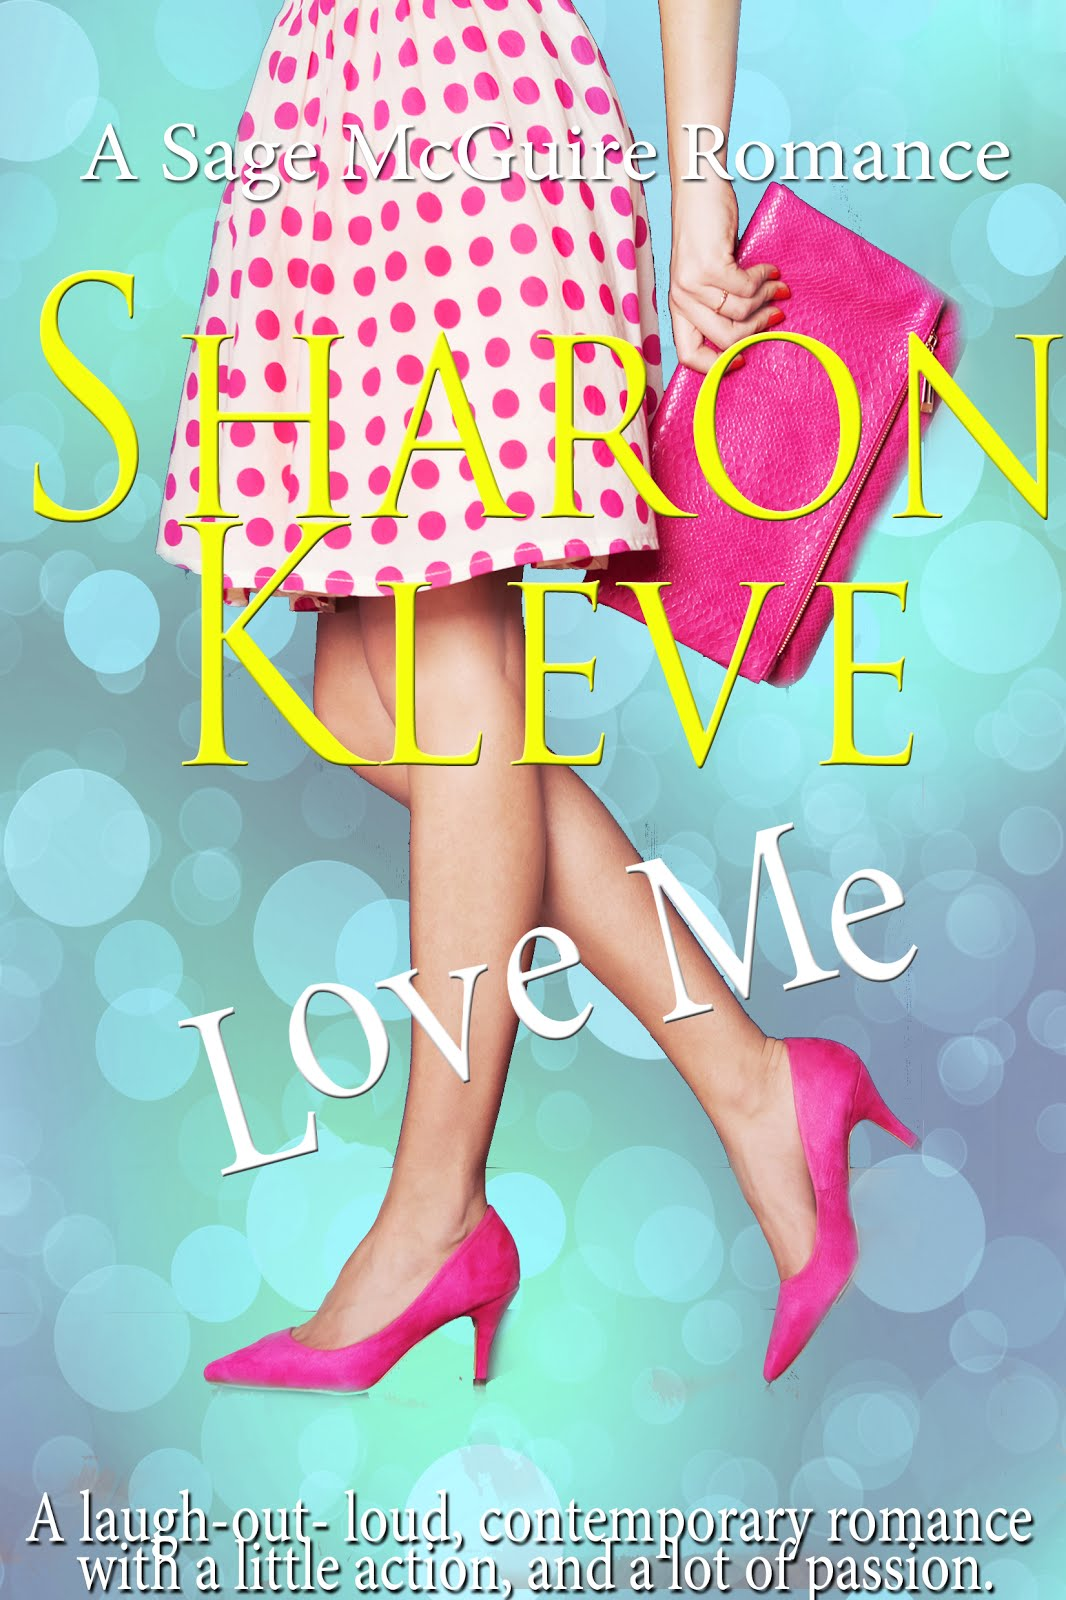 https://www.amazon.com/Love-Me-Sage-McGuire-Romance-ebook/dp/B073QYBXGX/ref=sr_1_1?ie=UTF8&qid=1500034847&sr=8-1&keywords=sharon+kleve